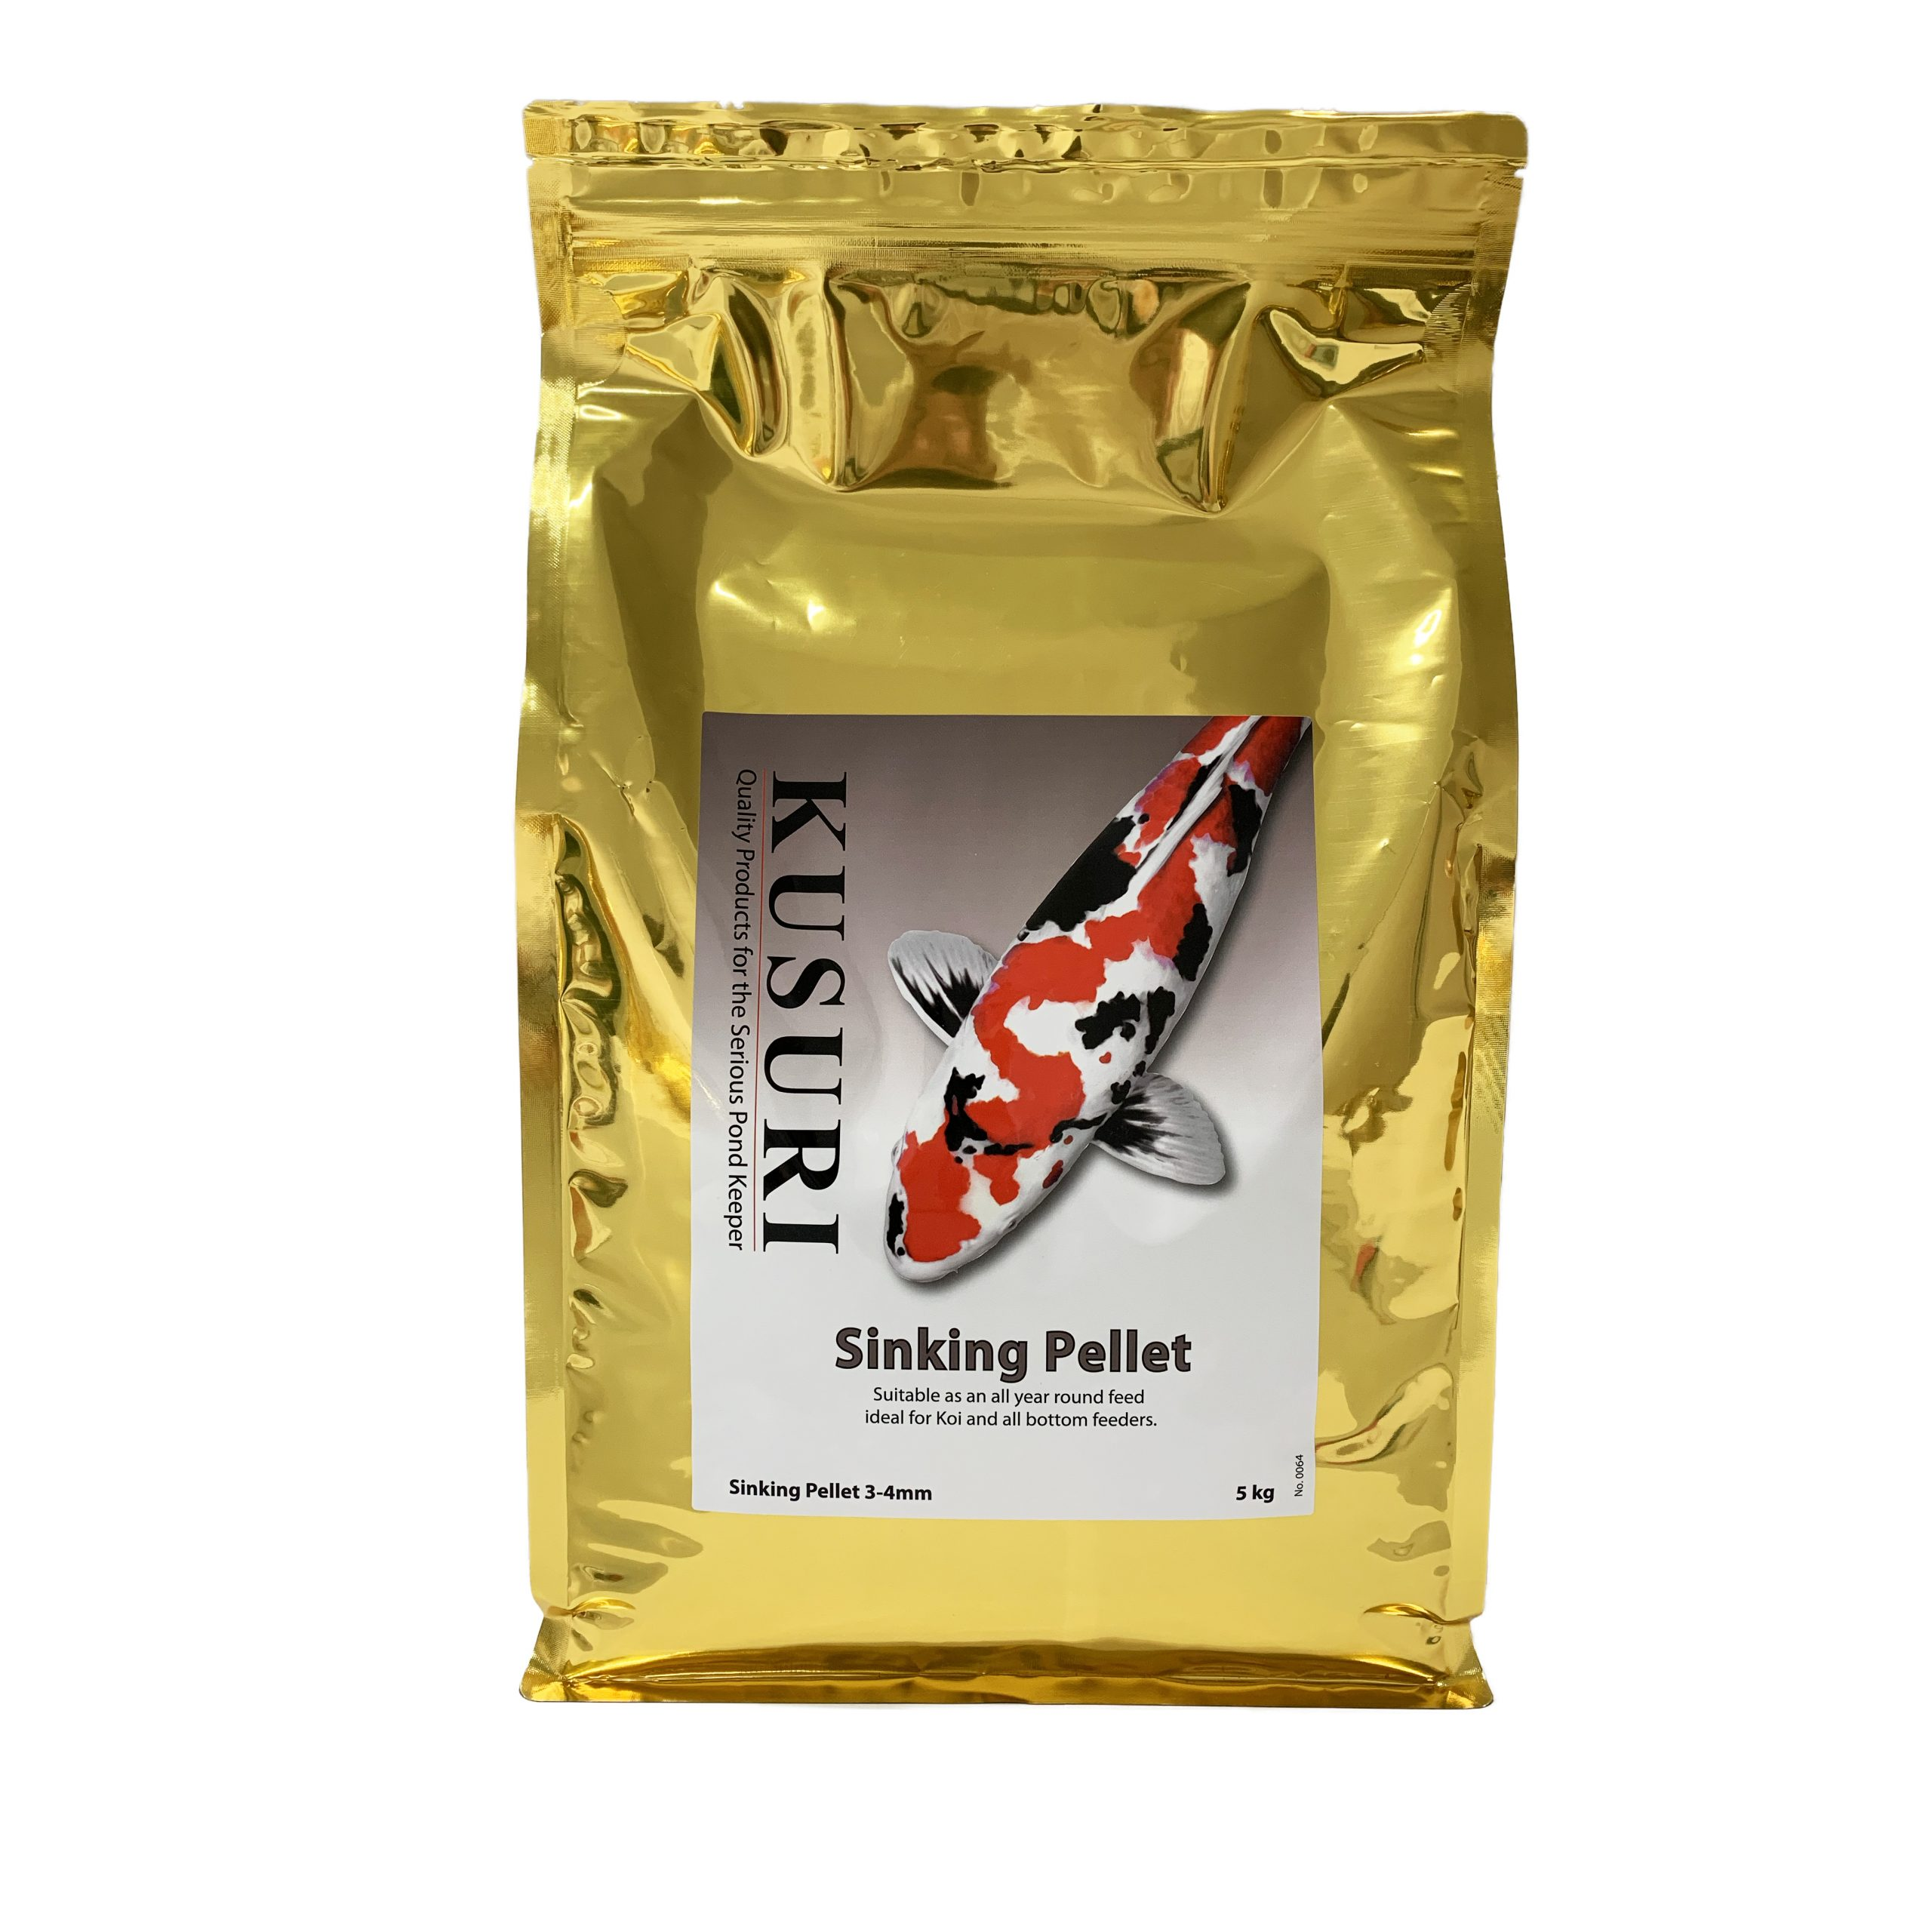 Kusuri Sinking Pellet Food Kusuri Products